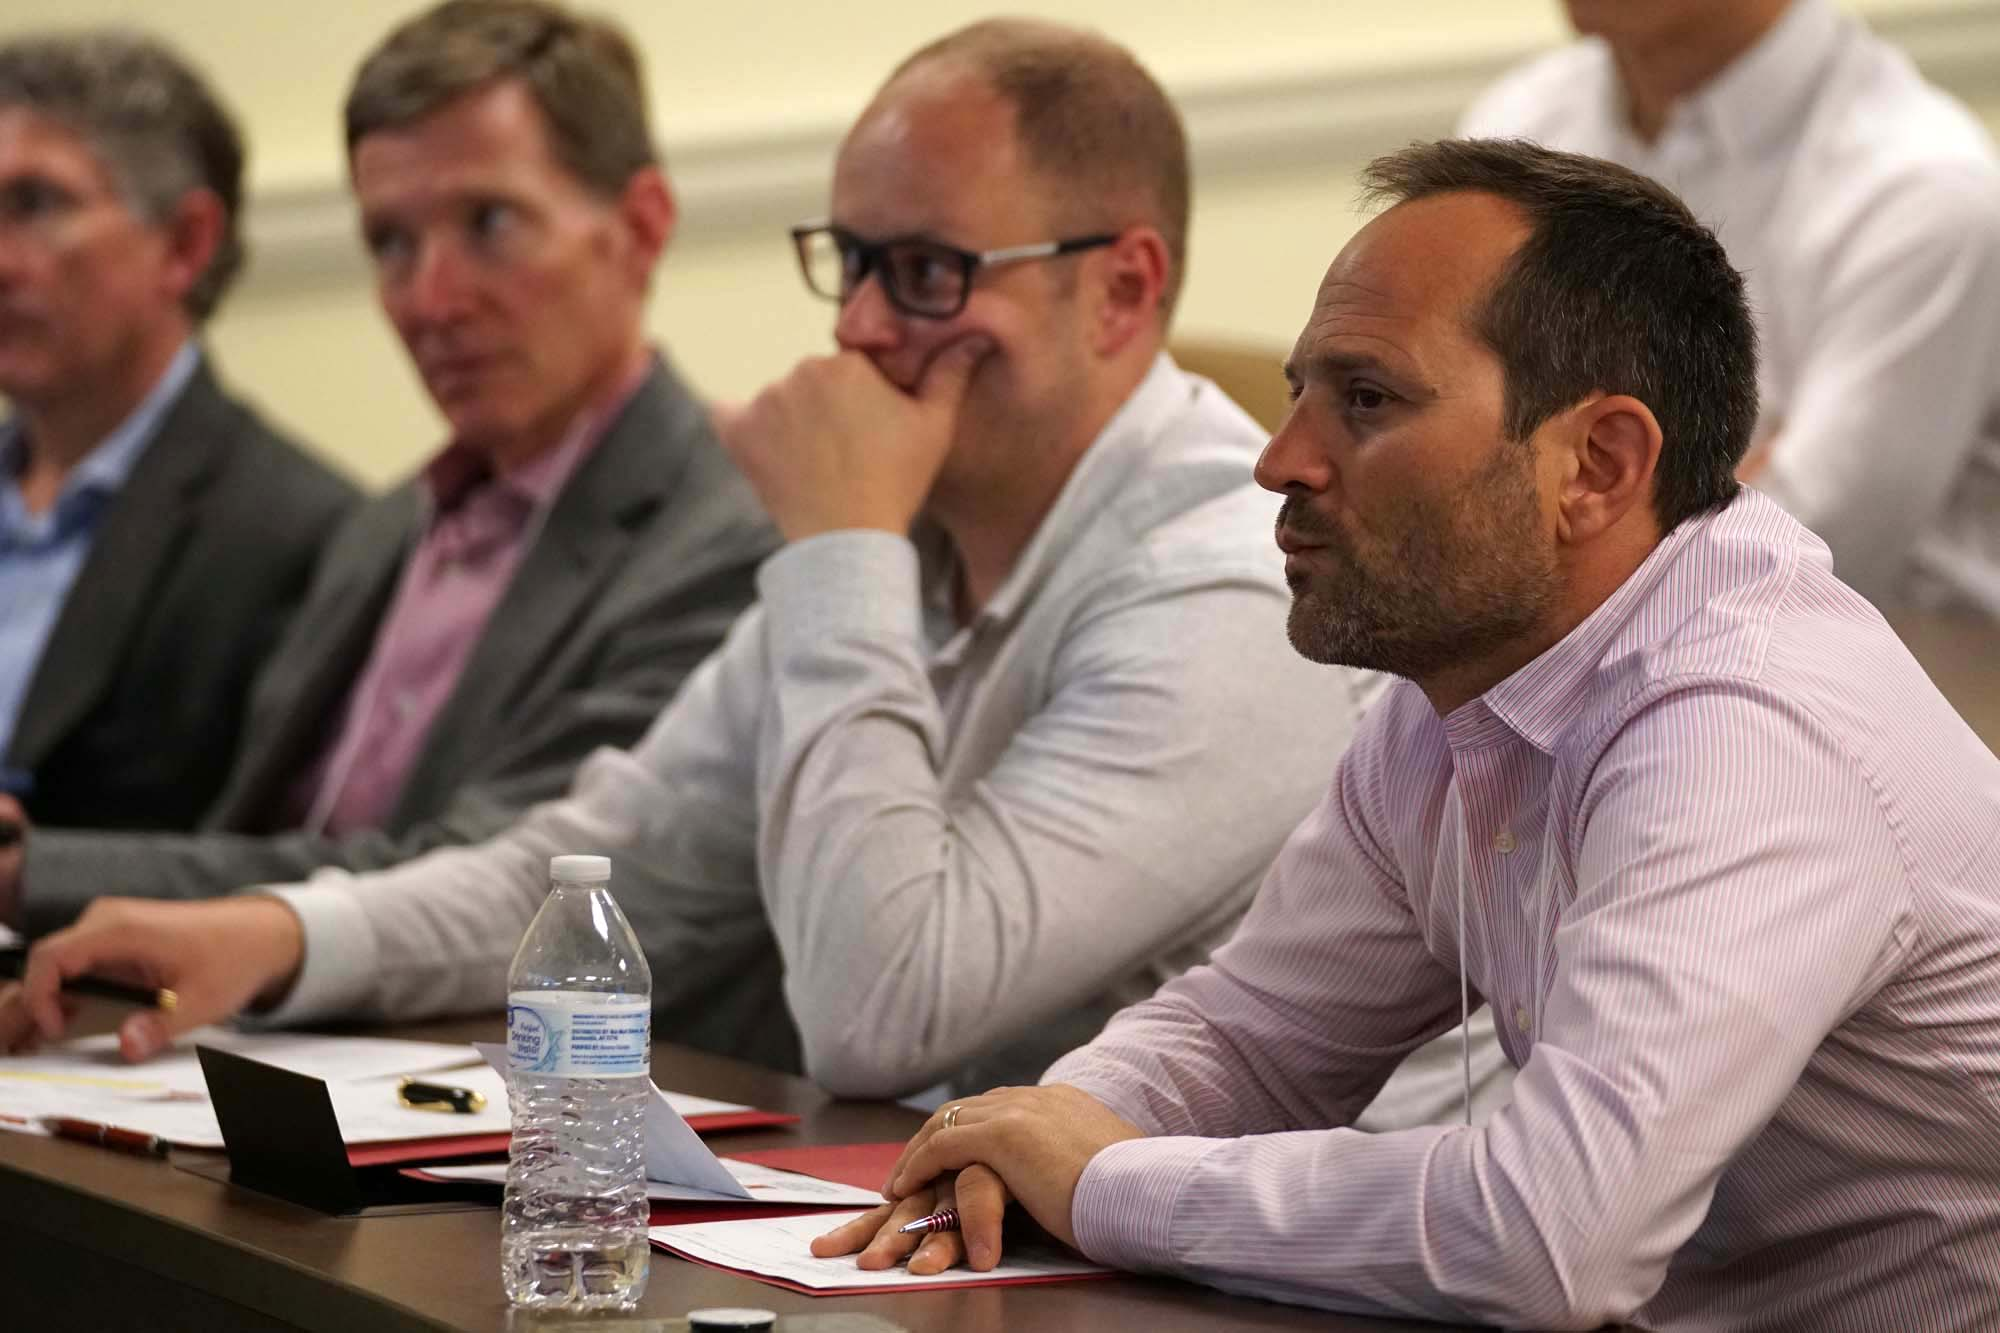 Judges listen to presentation at Startup Pitch Competition